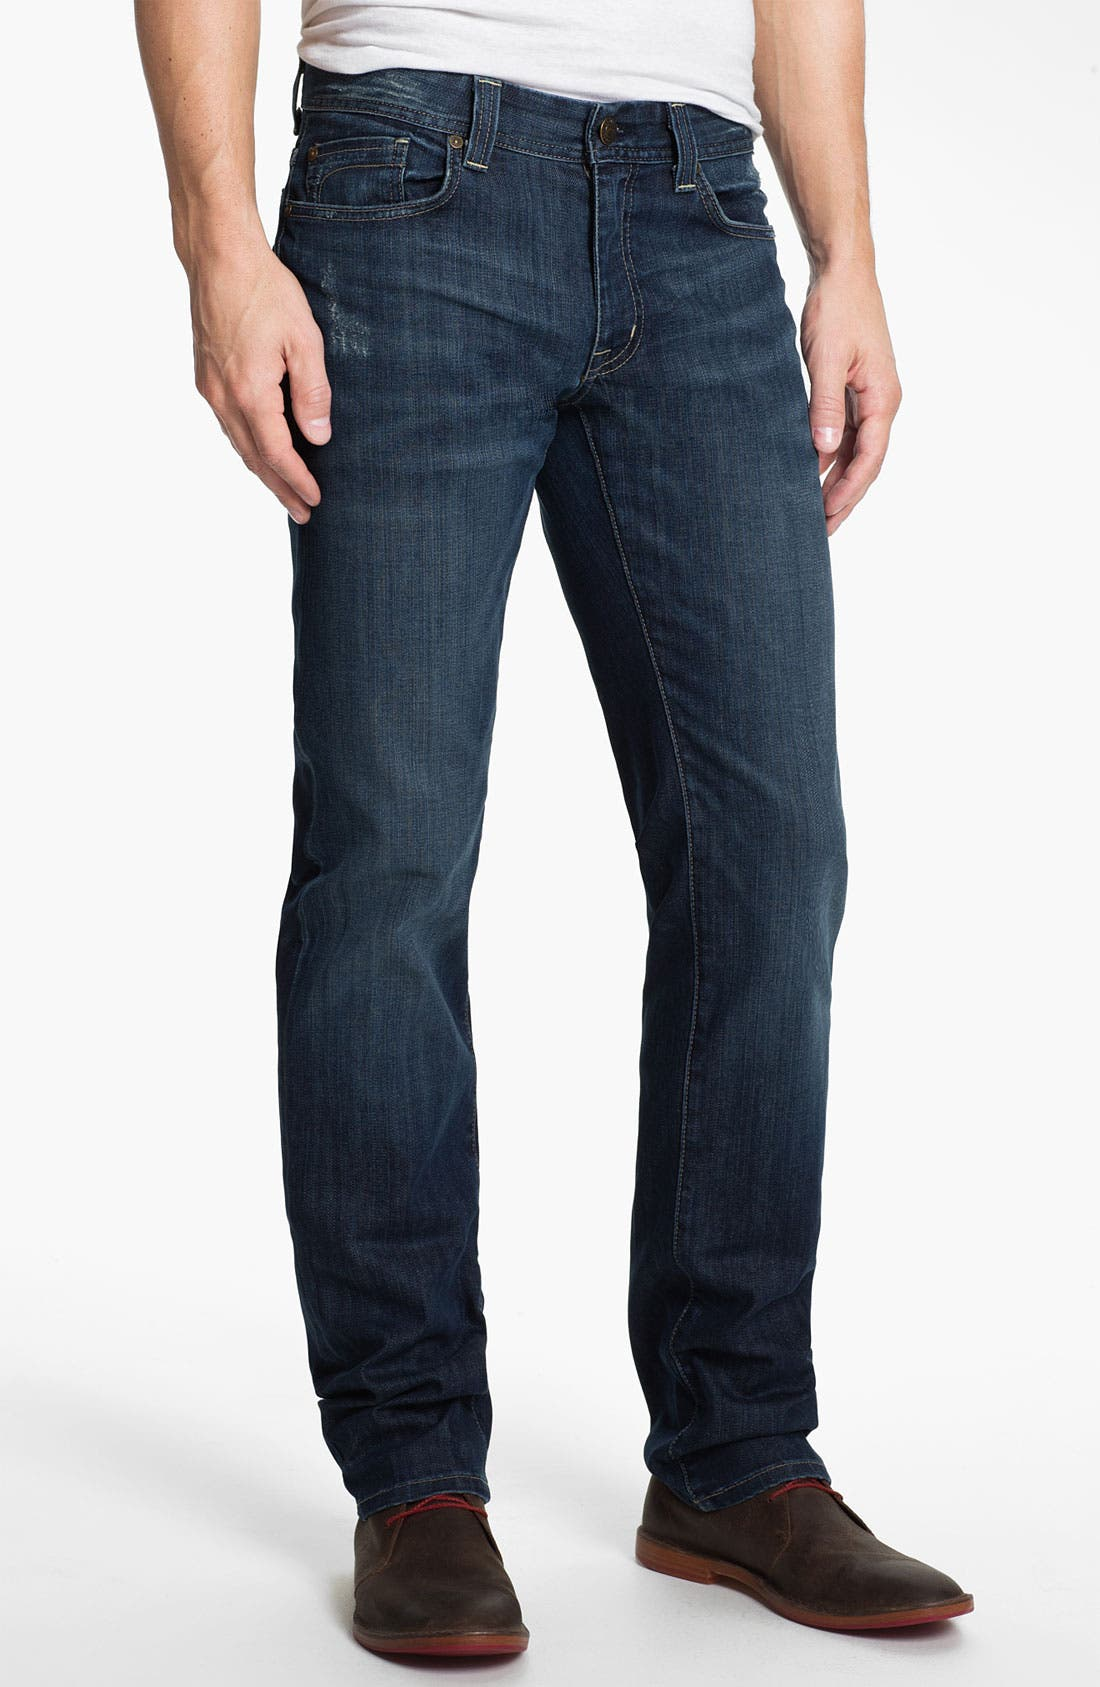 Alternate Image 1 Selected - Fidelity Denim 'Slim Jim' Slim Straight Leg Jeans (Exile Vintage)